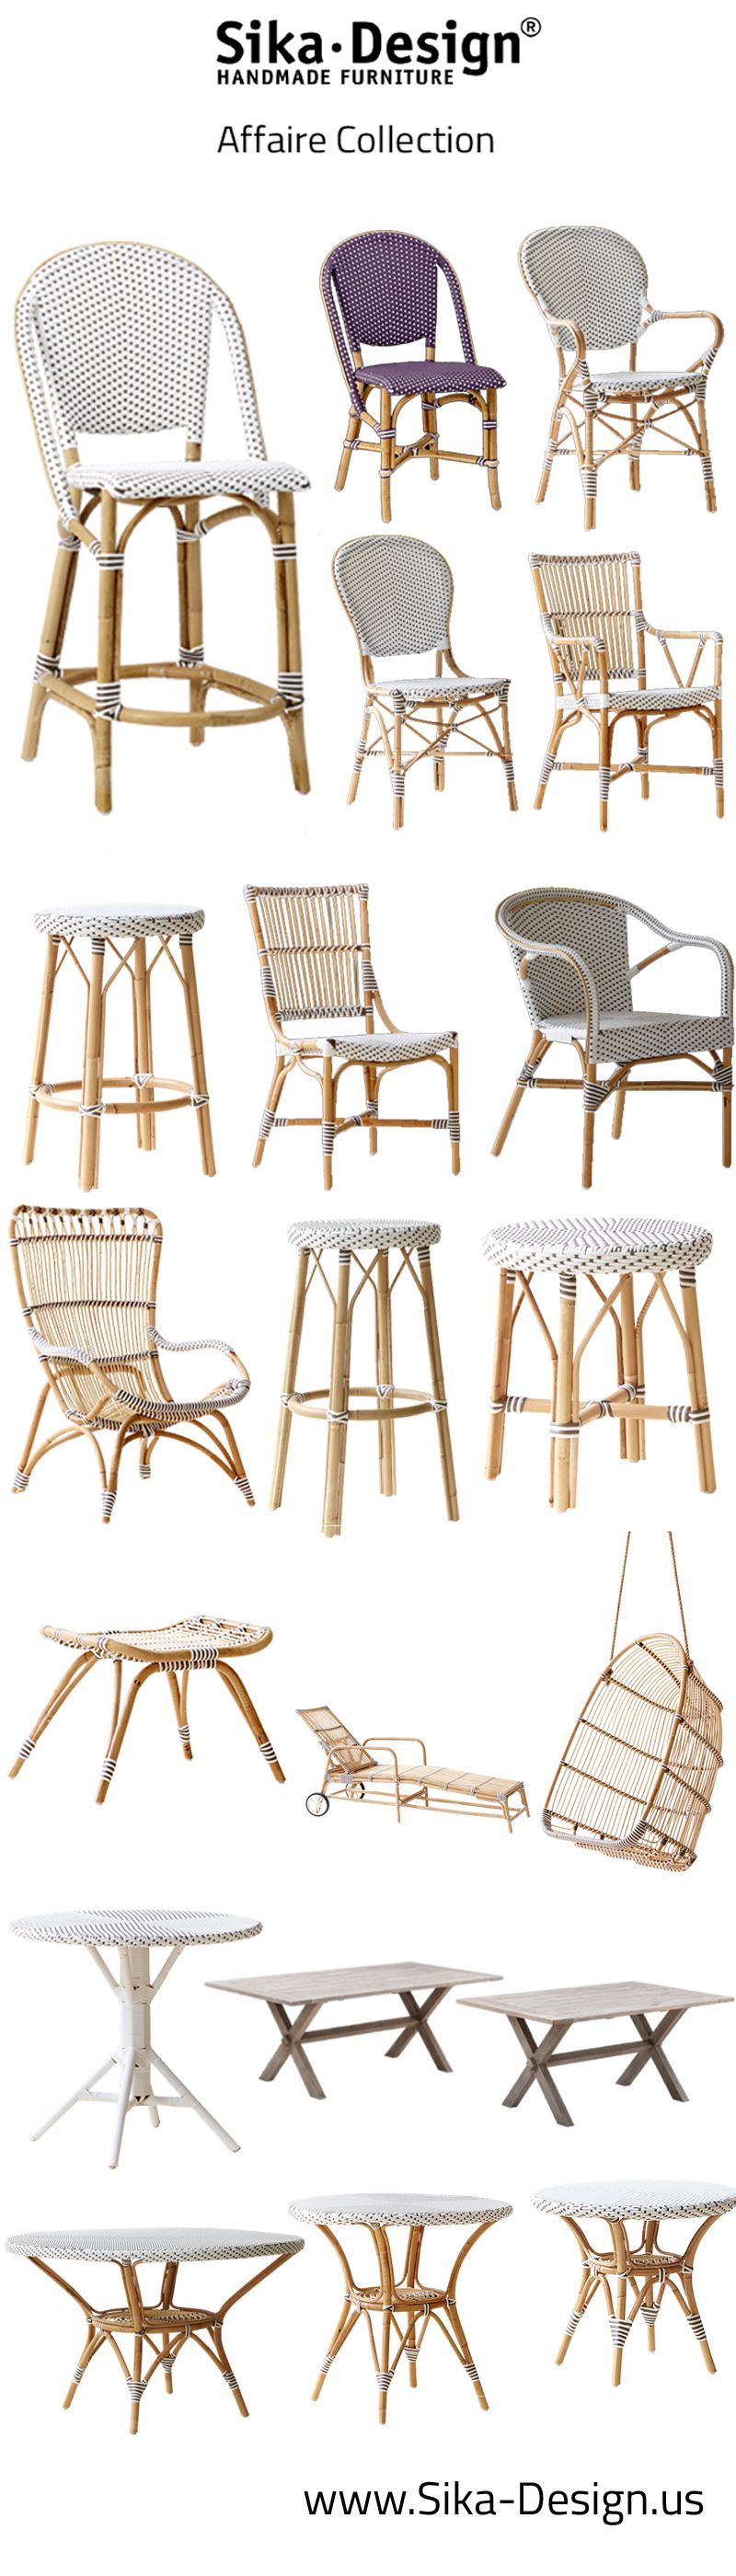 ... Brasseries, Bistros And Restaurants In Historical European Cities And  Capitals Throughout The World. Our Handcrafted Affaire French Bistro Chairs,  ...